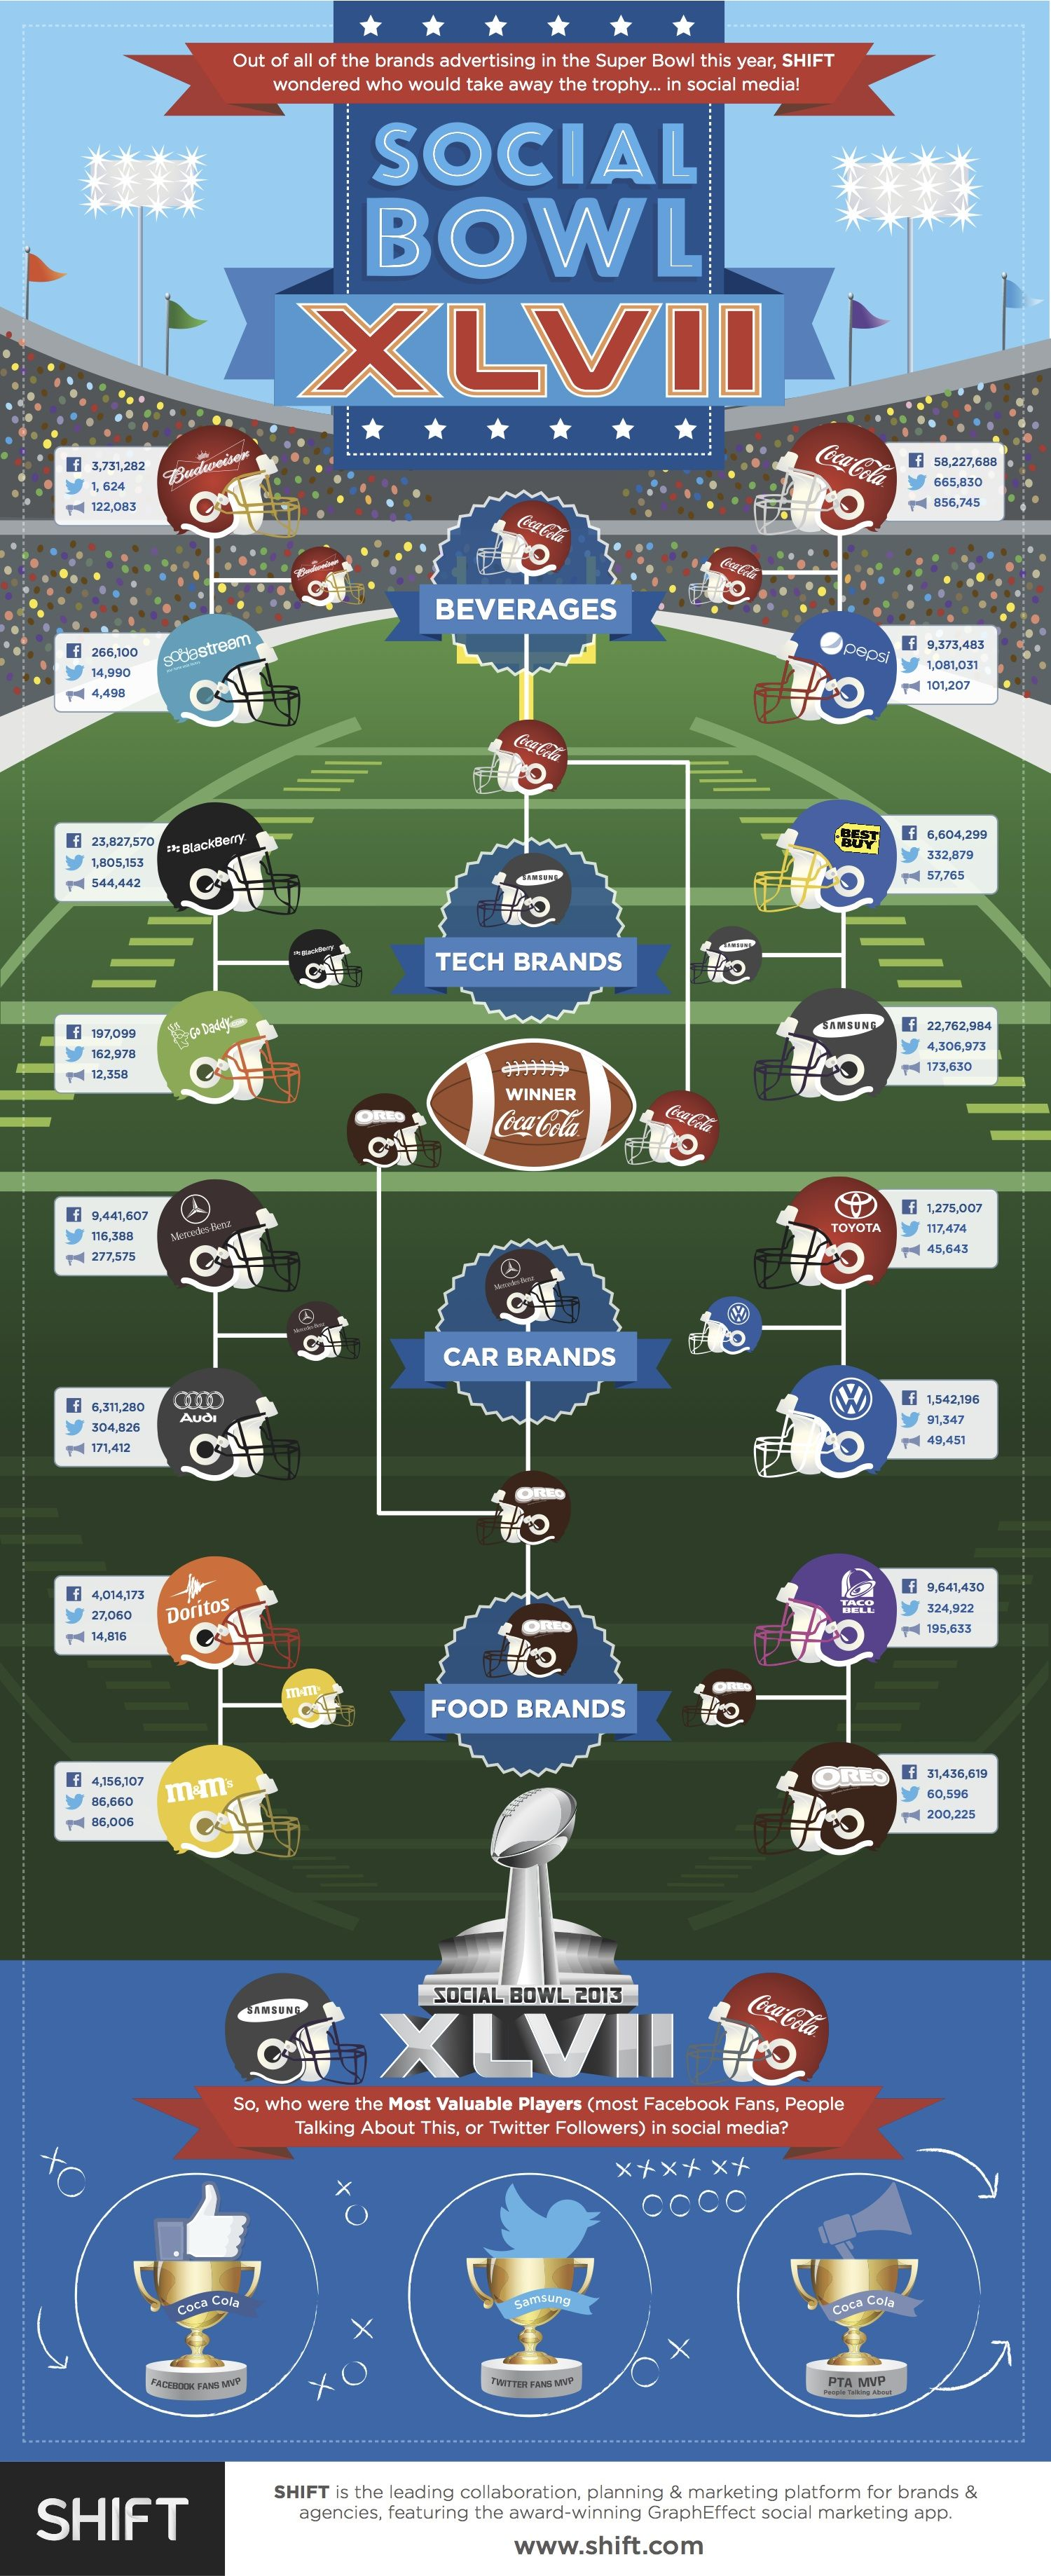 If the Super Bowl Were The Social Bowl, Coke Would Win